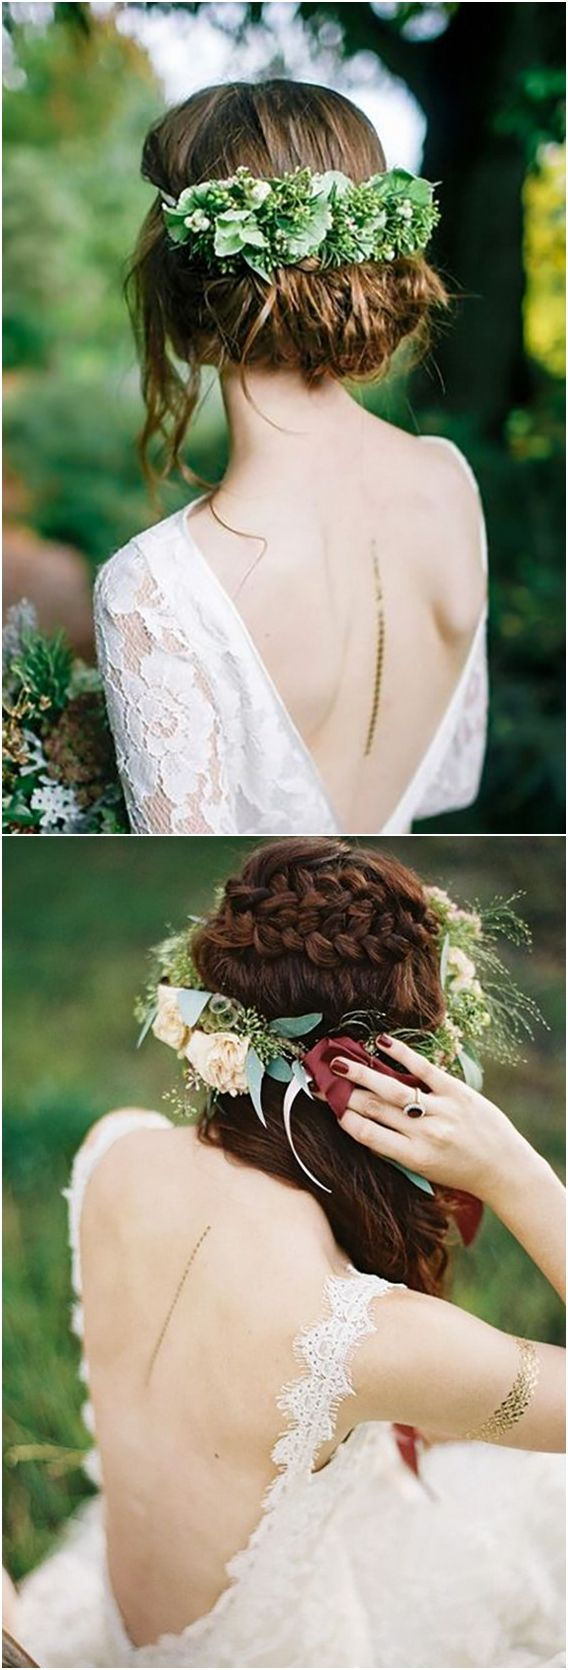 45 wedding hairstyles with flower crowns perfect for your wedding today incorporating a flower crown to an updo or loose locks is an easy way for brides to add subtle color texture and natural beauty to a wedding day izmirmasajfo